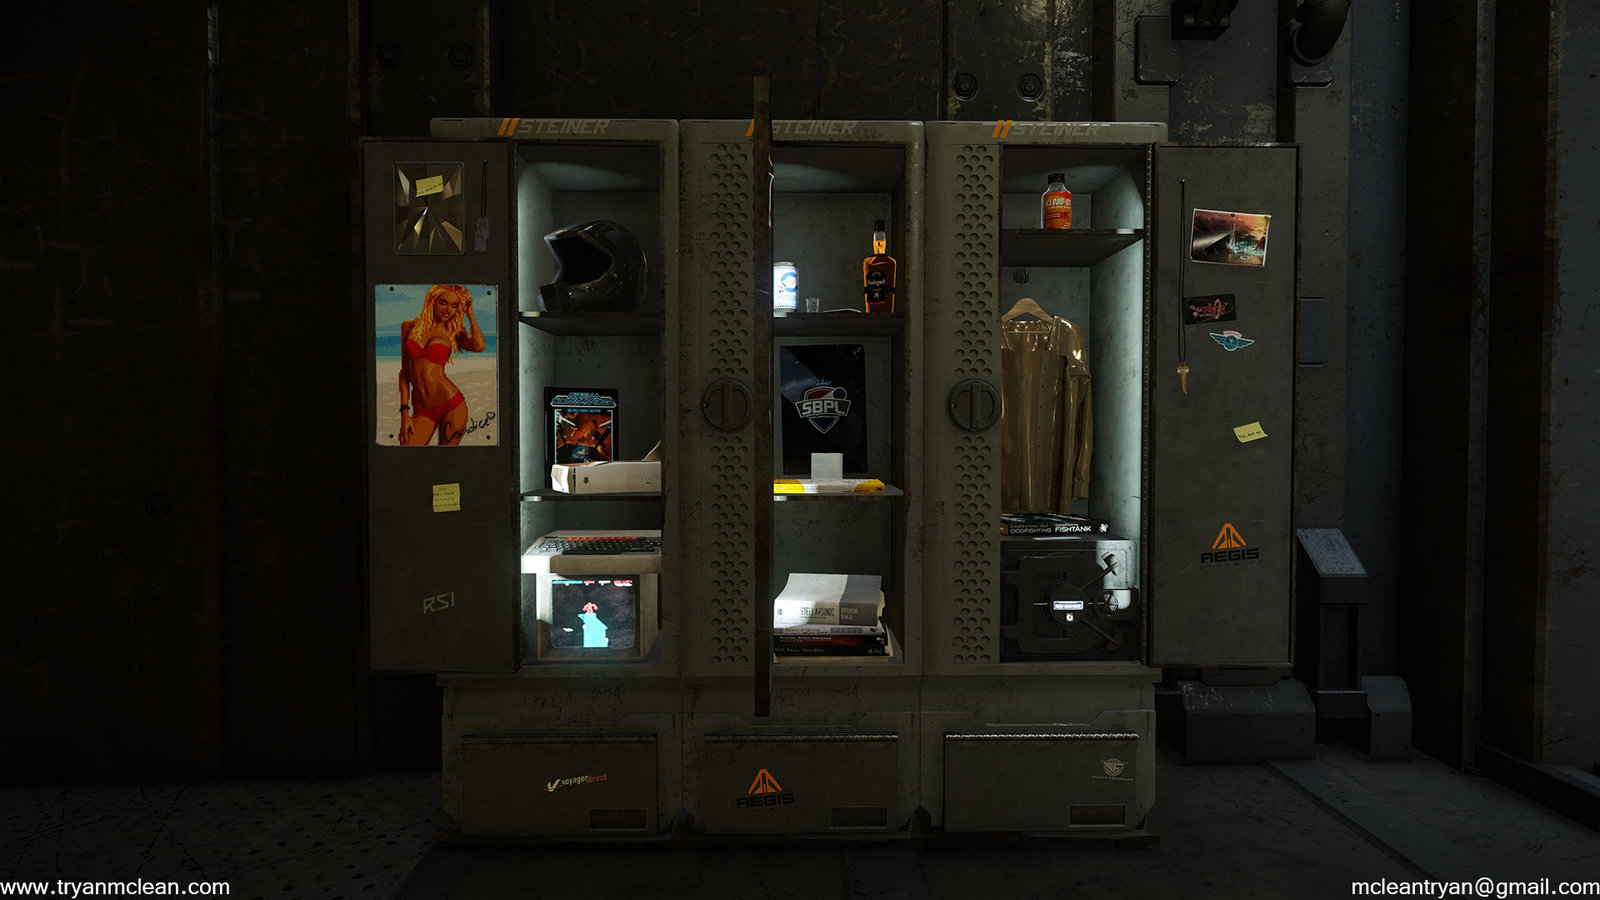 Star Citizen Subscriber Flair Locker. Modelling by myself, except gold shirt and safe. Textures and blending done by others on team.